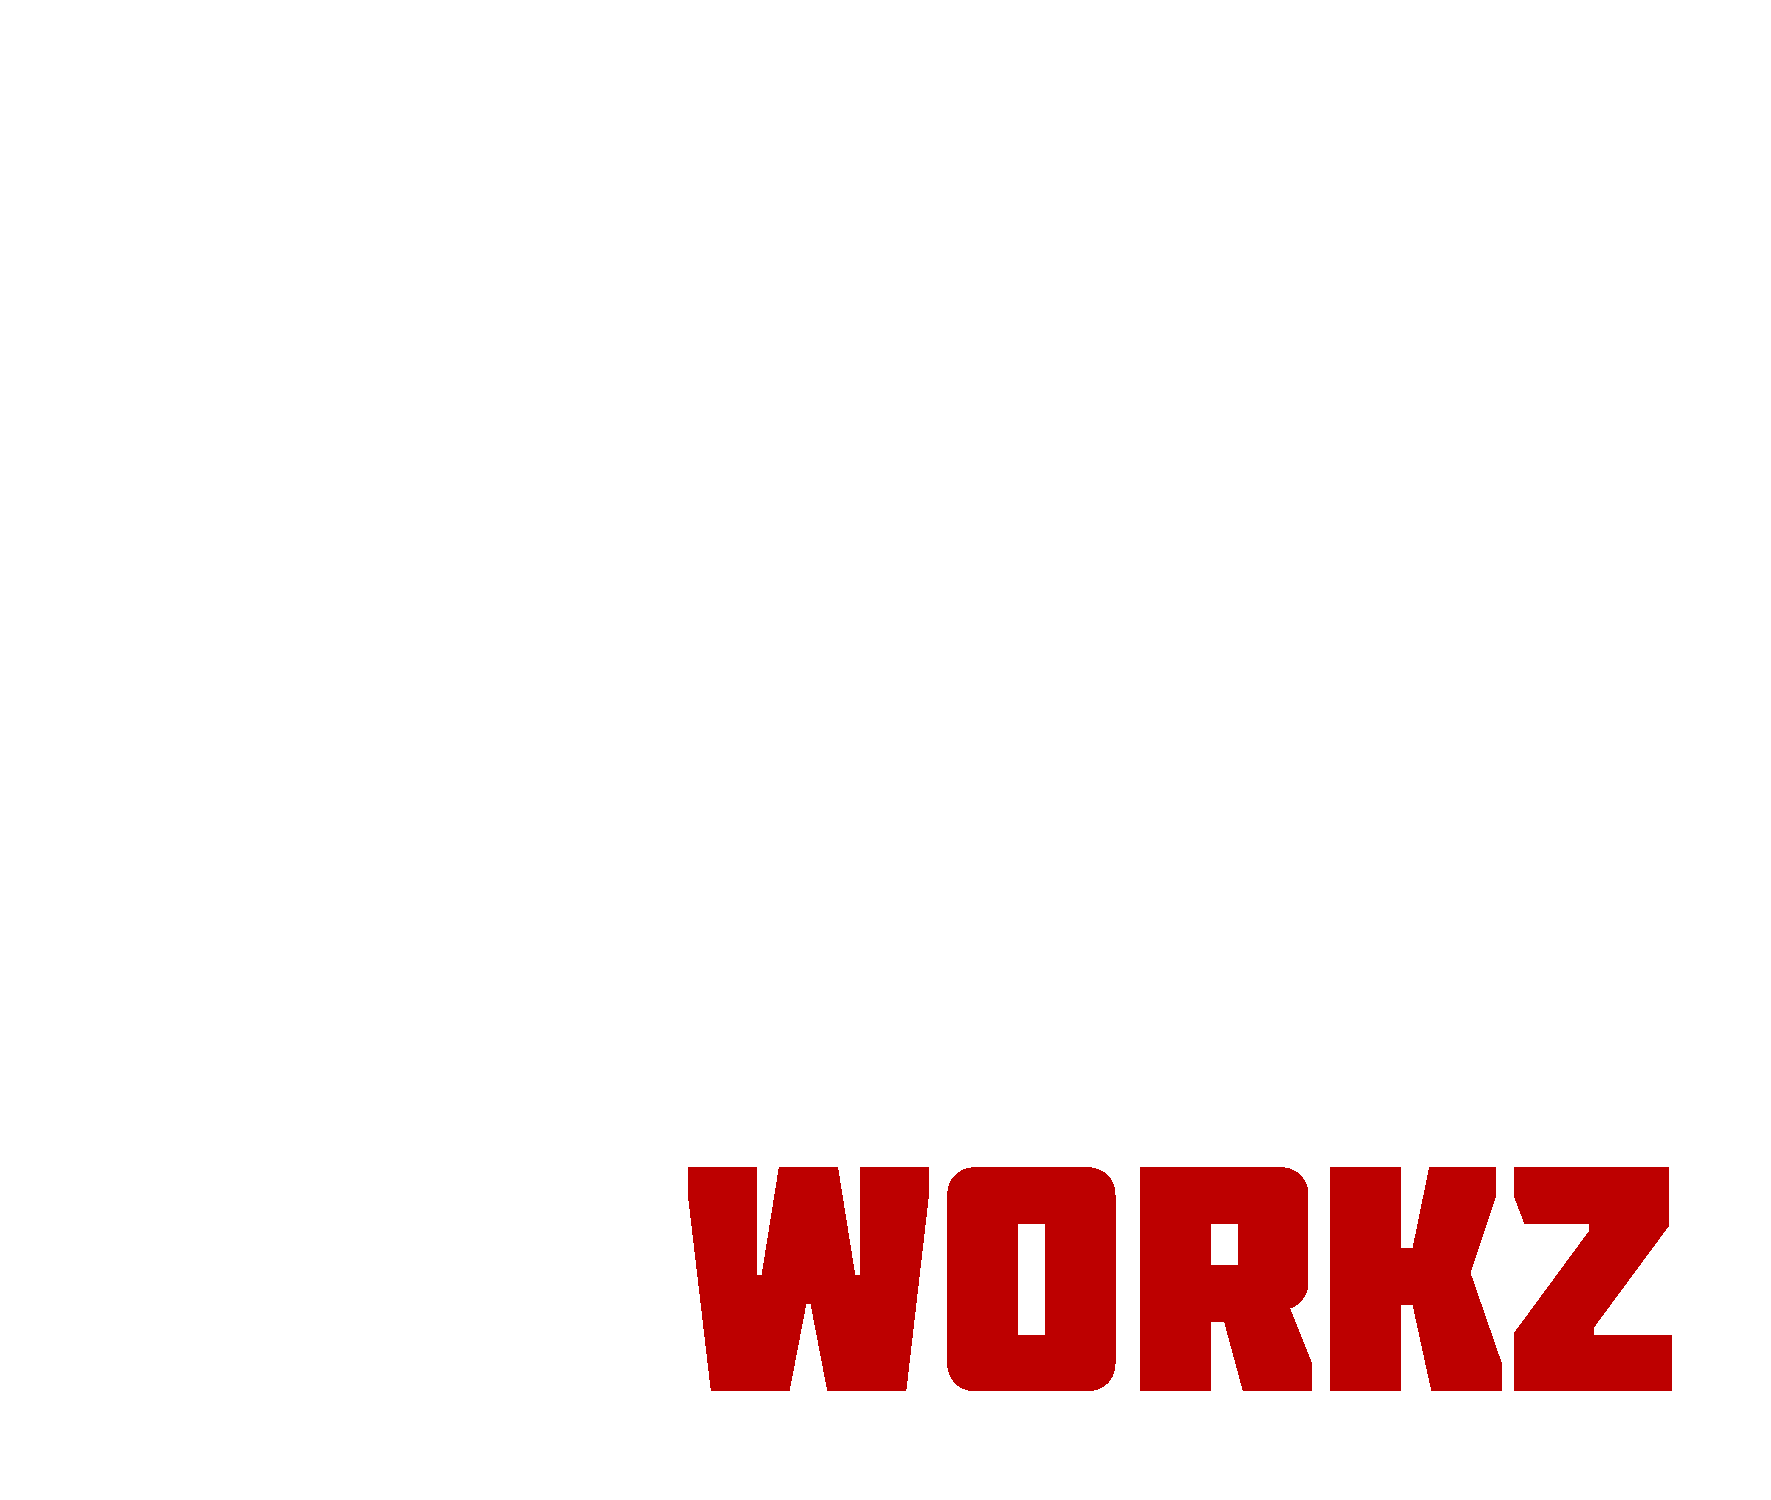 sailworkz north sails nederland paul gladdines